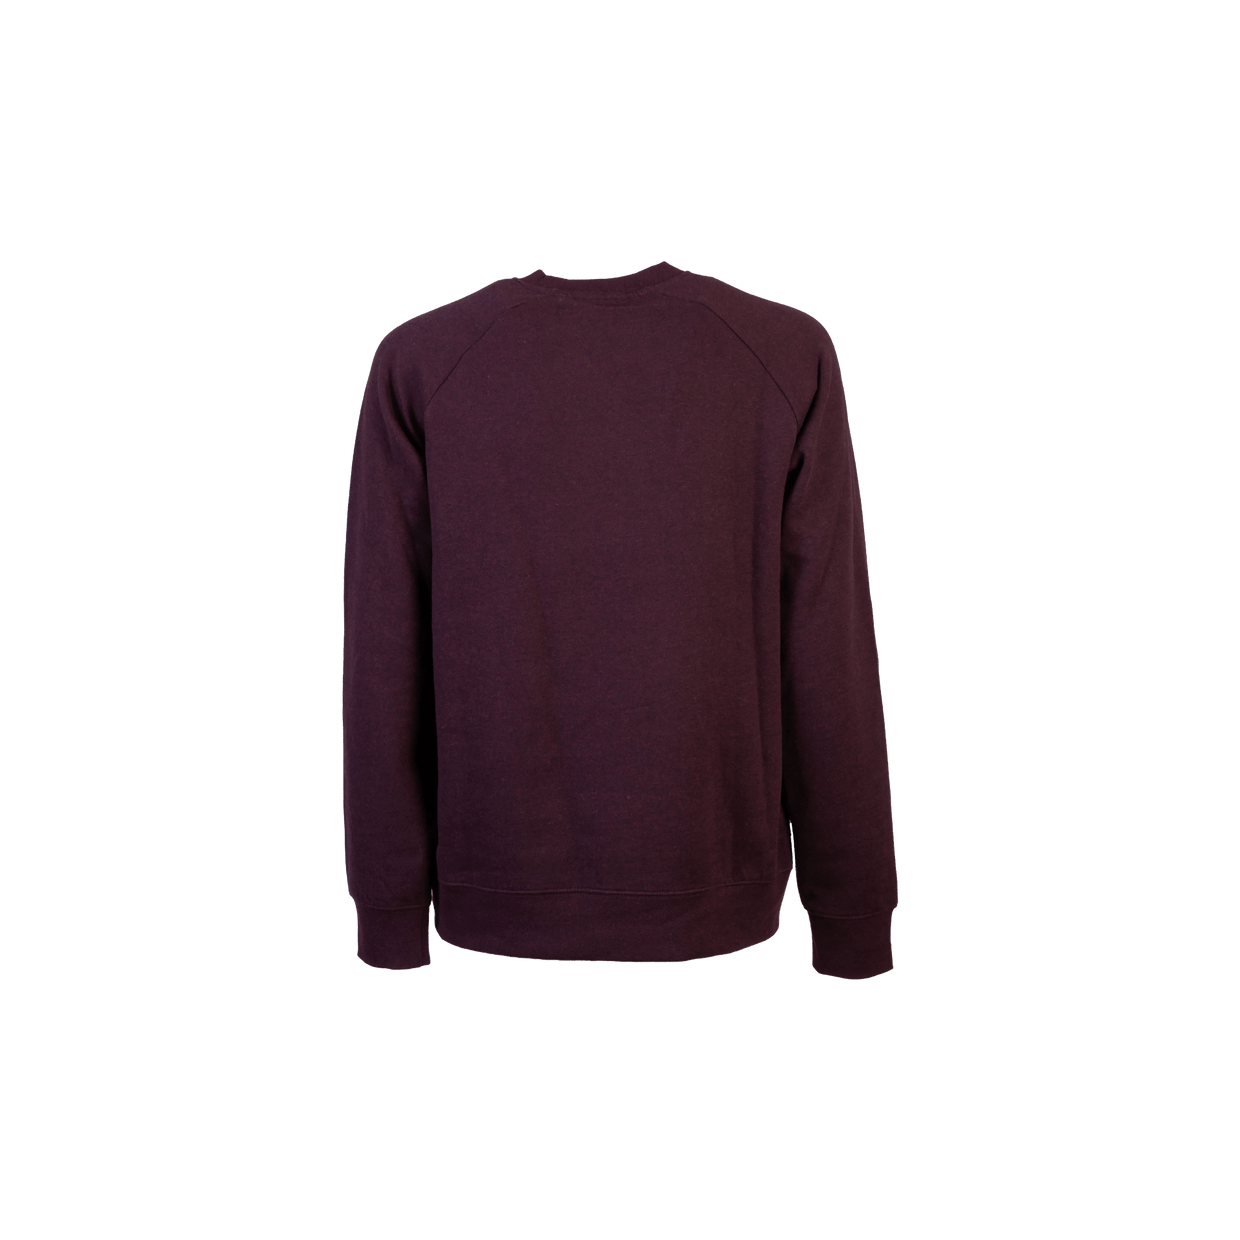 Holbrook Sweatshirt - Amarone Heather